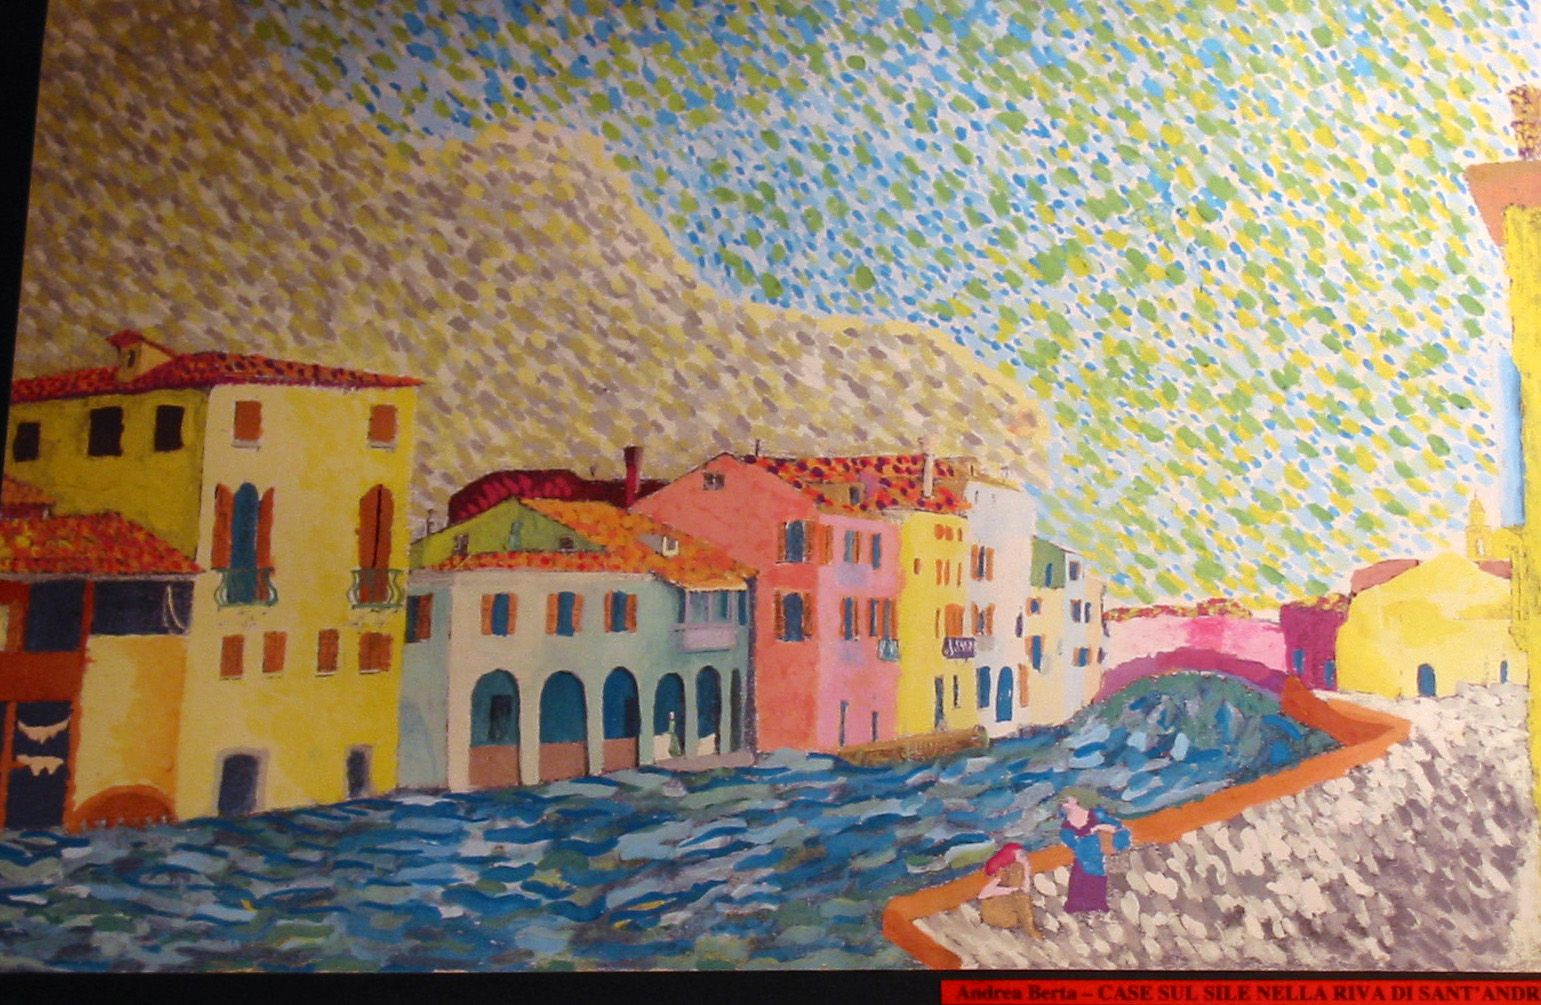 """""""Case Sul Sile Nells Riva di Sant'  Andrea"""", by Andrea Berta, a student of Prof. Fabio Sandrini at L. Coletti Middle School in Treviso, one of 95 communities in the Sister City twinning with Sarasota and Treviso Province in Italy. The art was displayed at the Hands of Heritage Fest at Robarts Arena in Sarasota in 2003"""